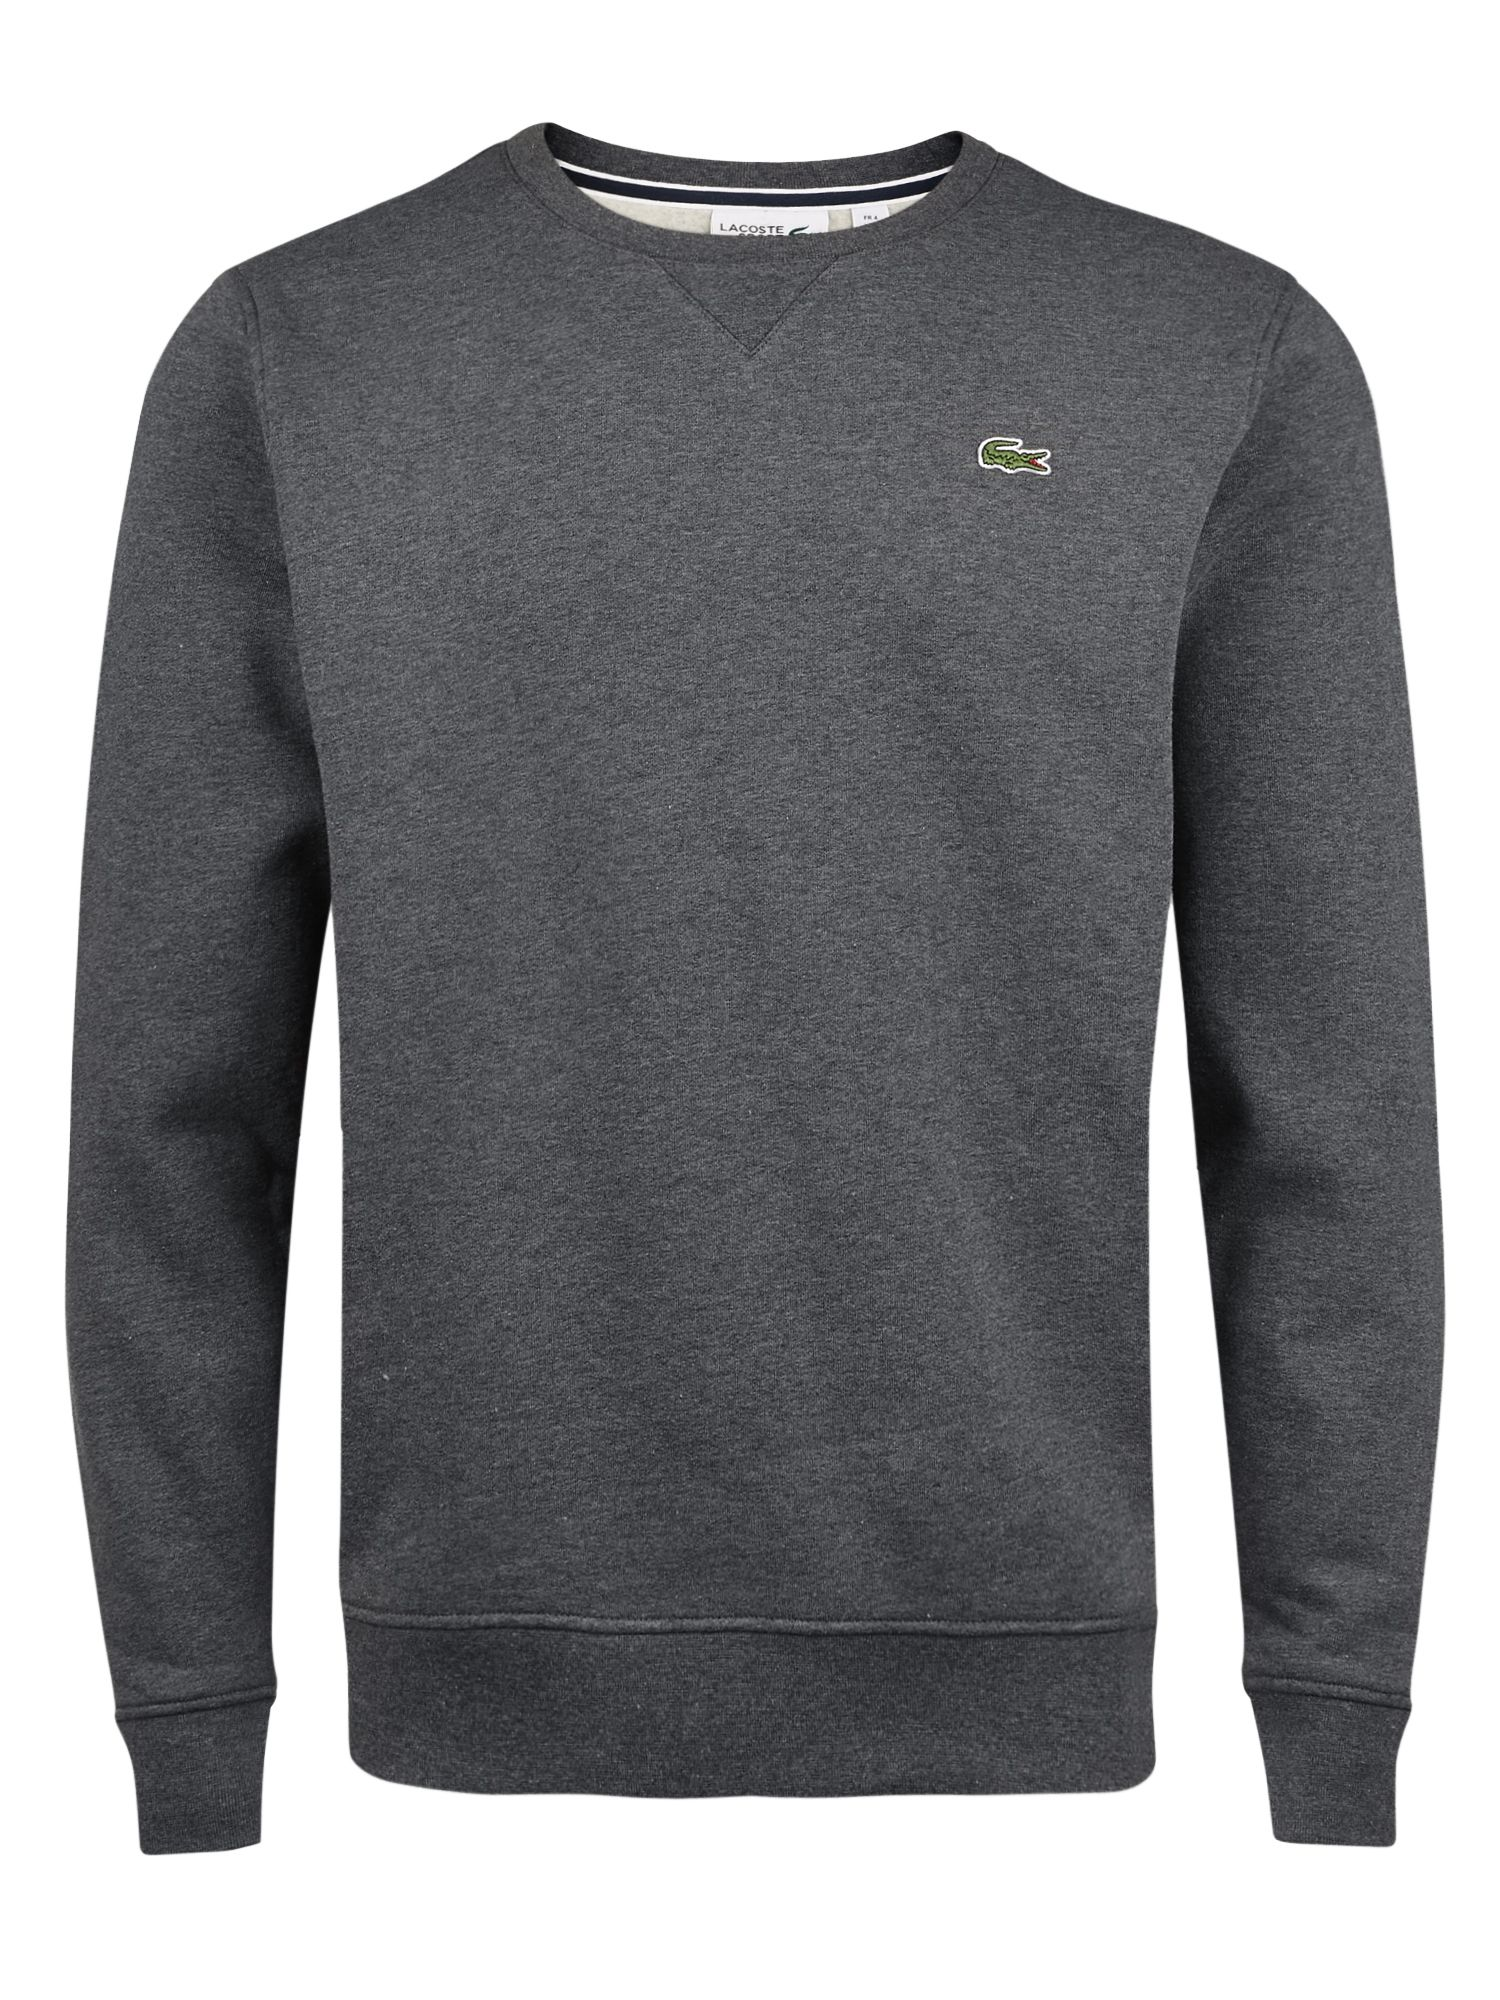 Men's Lacoste Lacoste Crew Neck Fleece Sweatshirt, Grey